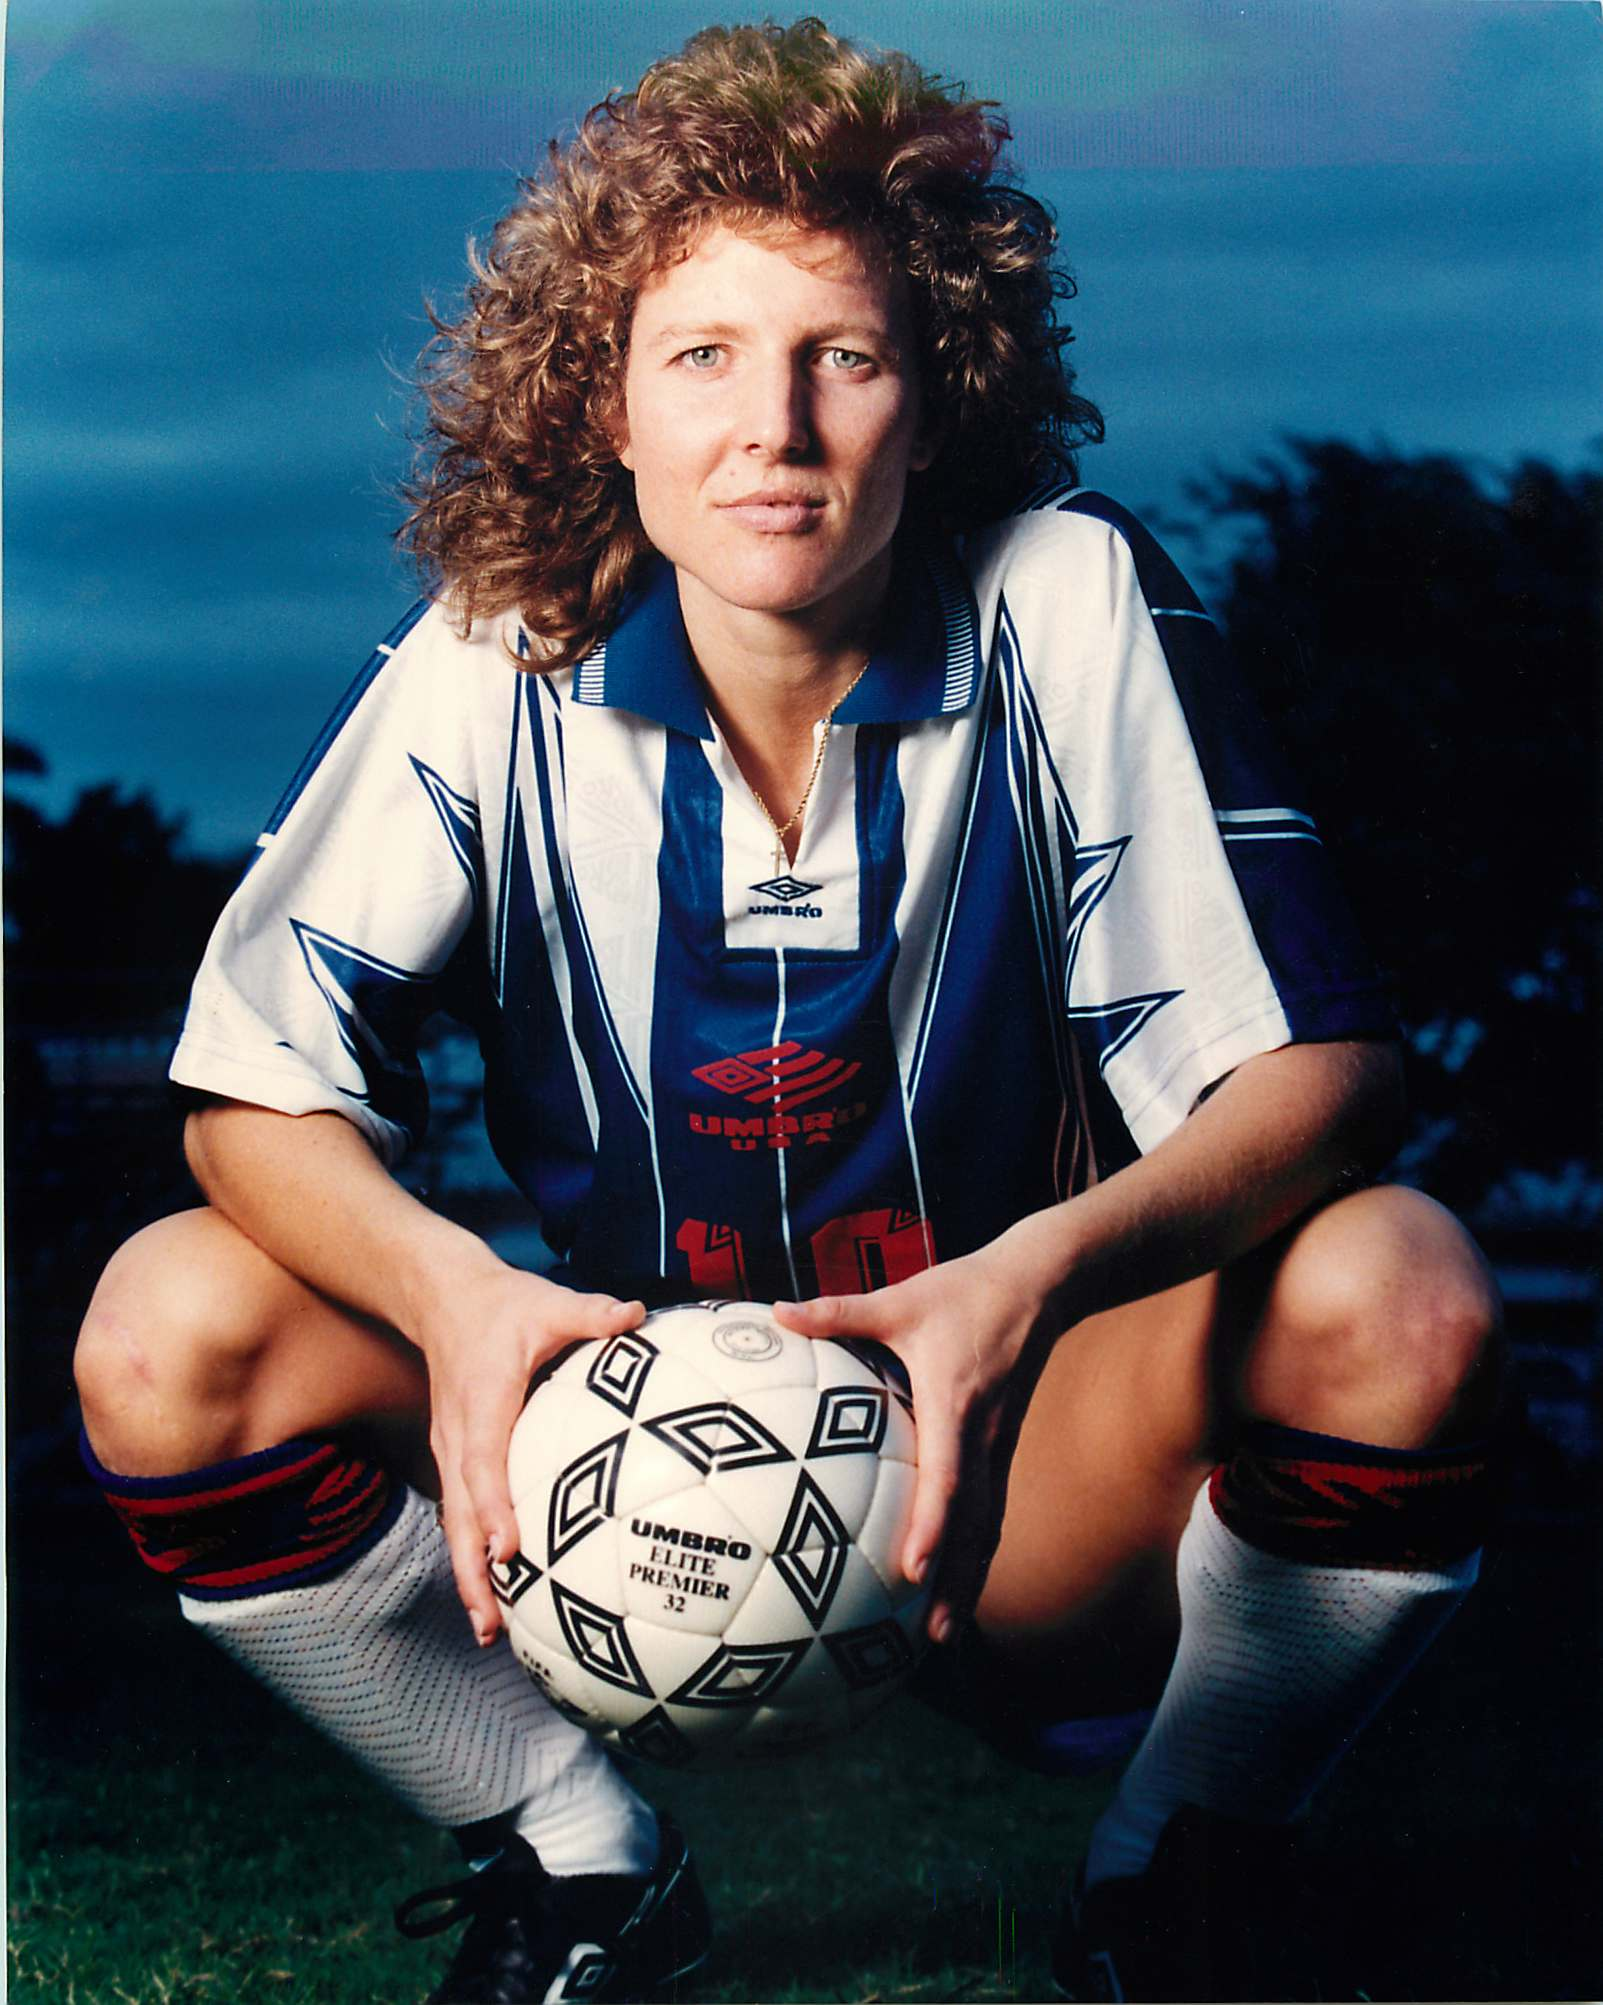 Michelle Akers UMBRO